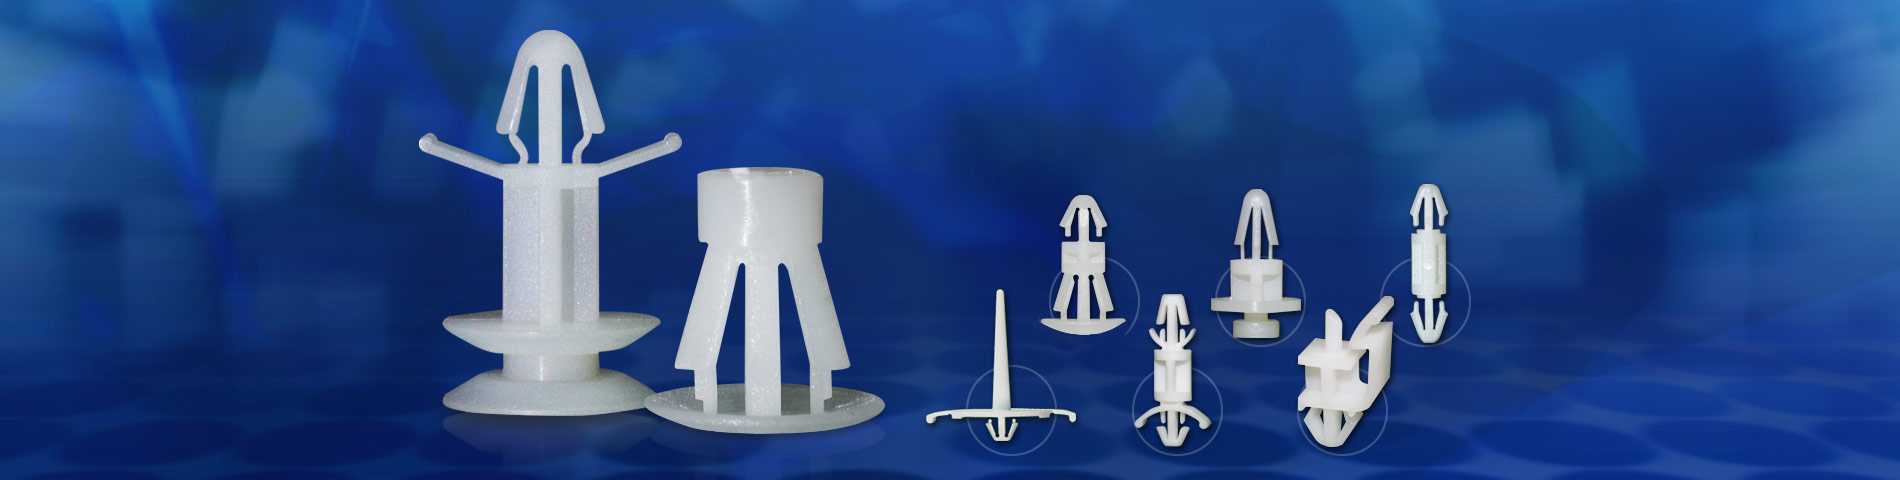 Spacer Support The Symbol of Excellence